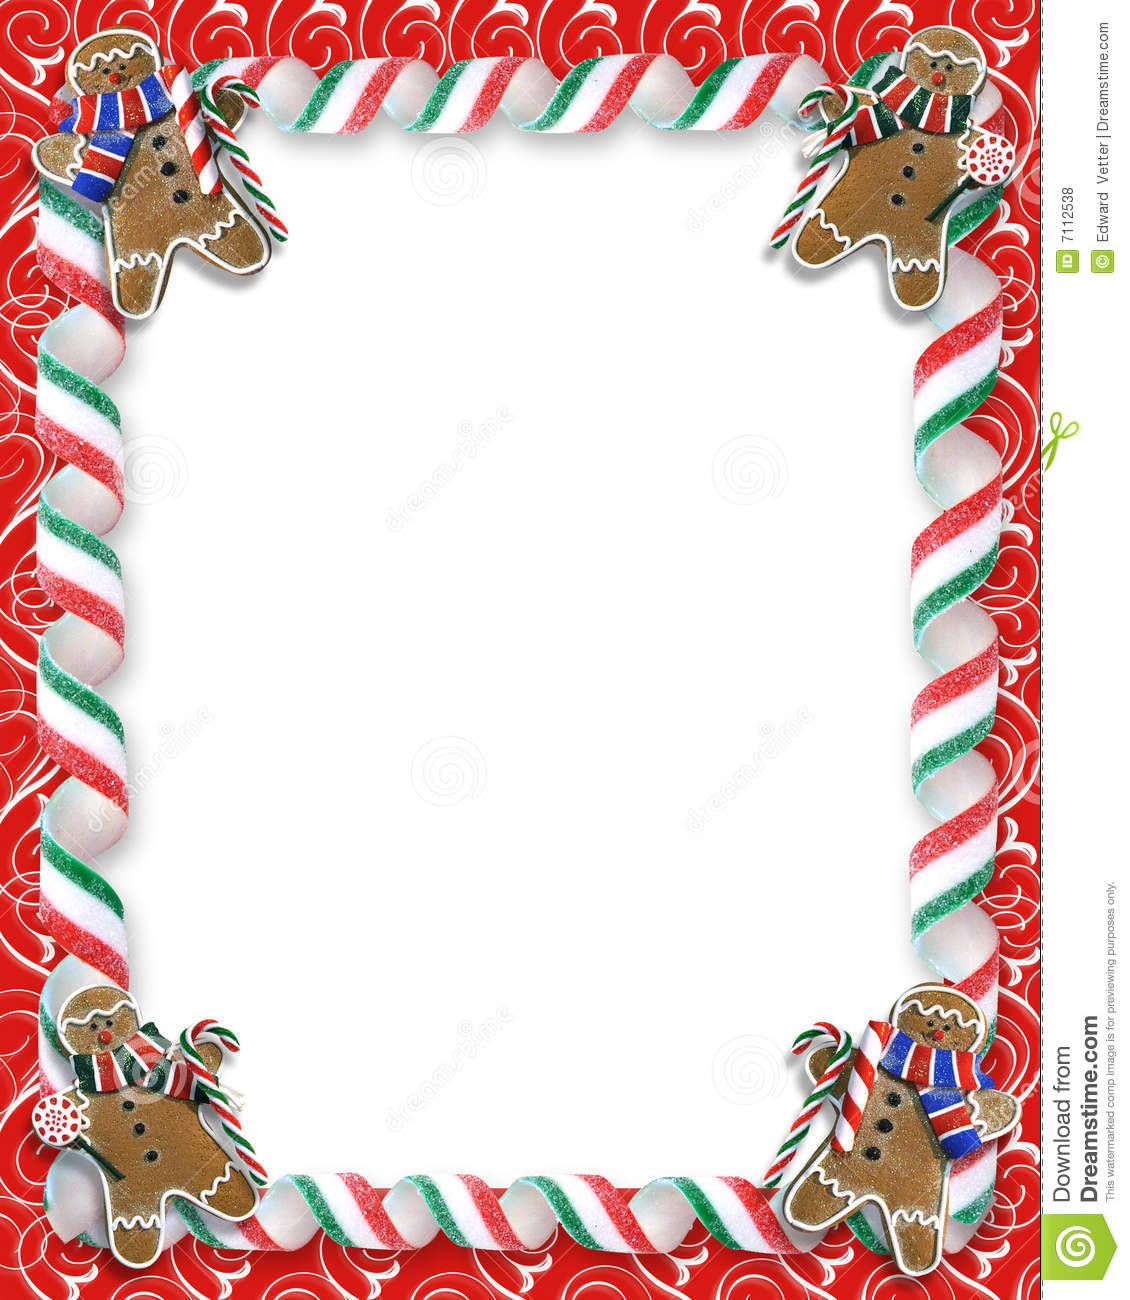 Christmas Border Cookies And Candy Royalty Free Stock Photos - Image ...